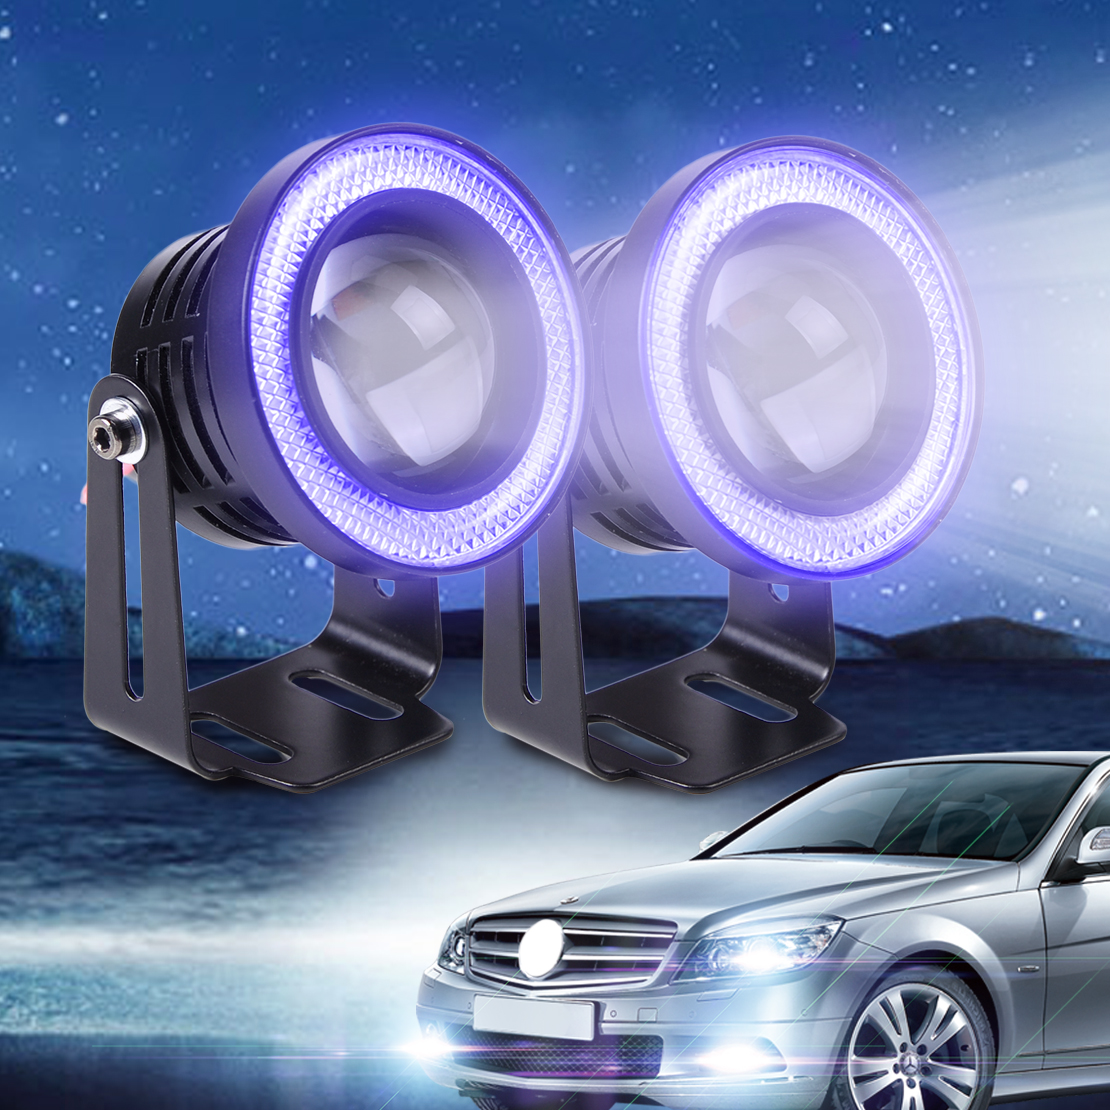 DWCX 2pcs 2.5 10W White LED Projector Fog Lens Driving Light with Blue LED Angel Eye Halo Ring For Ford BMW Kia VW Audi Honda double light lens angel eye projector h4 h7 two ray lens blue green [qp378 bg]